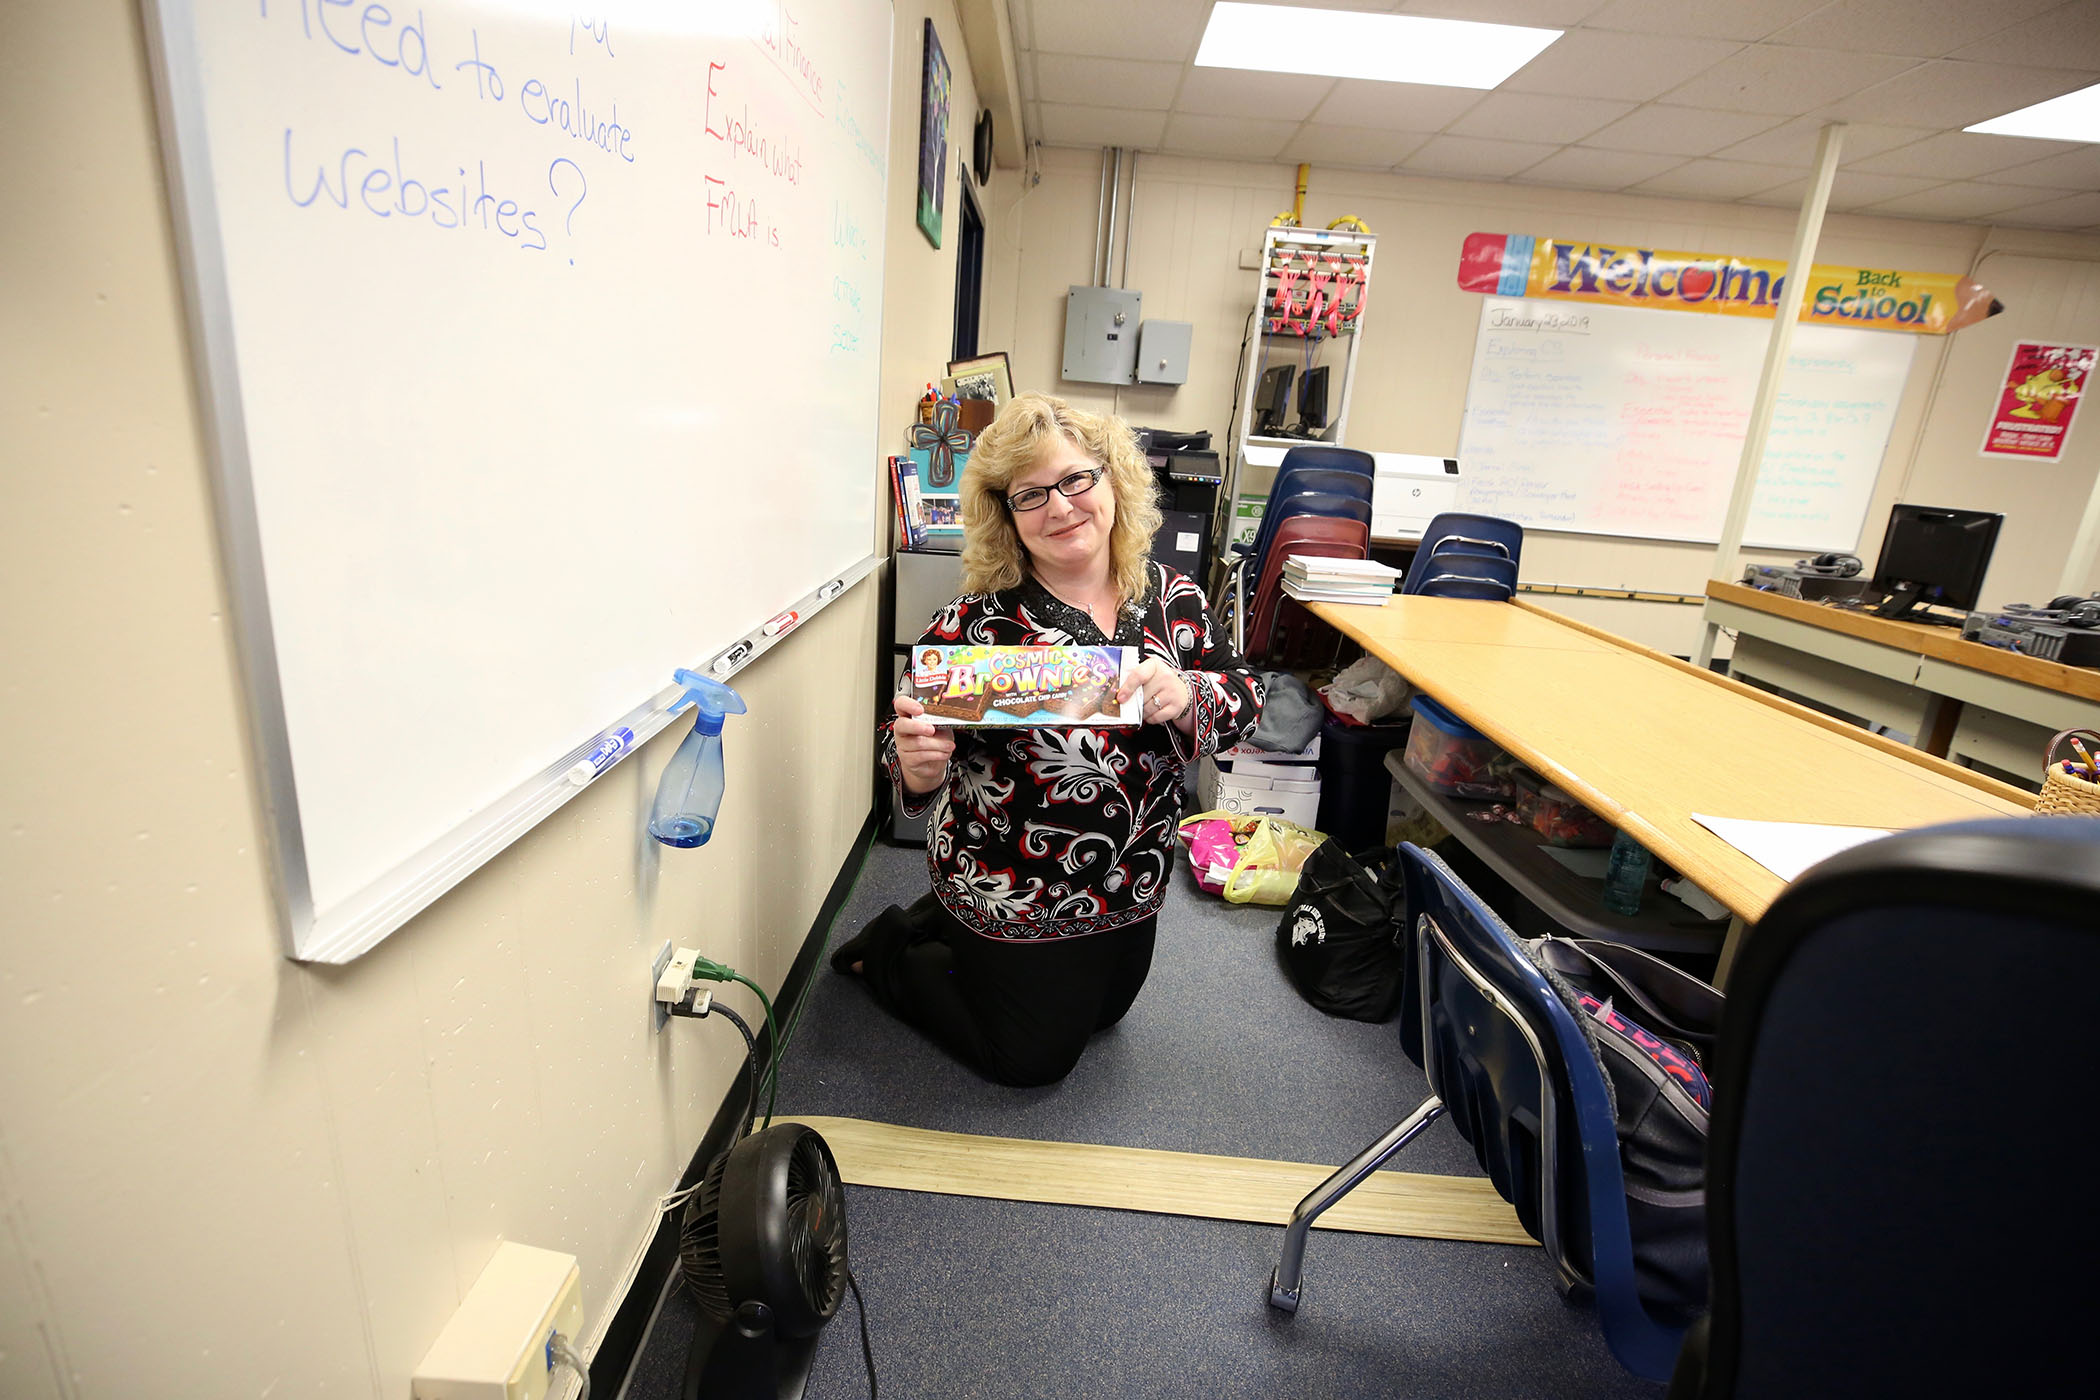 Mrs. Alford holds up snacks she has bought for her students.